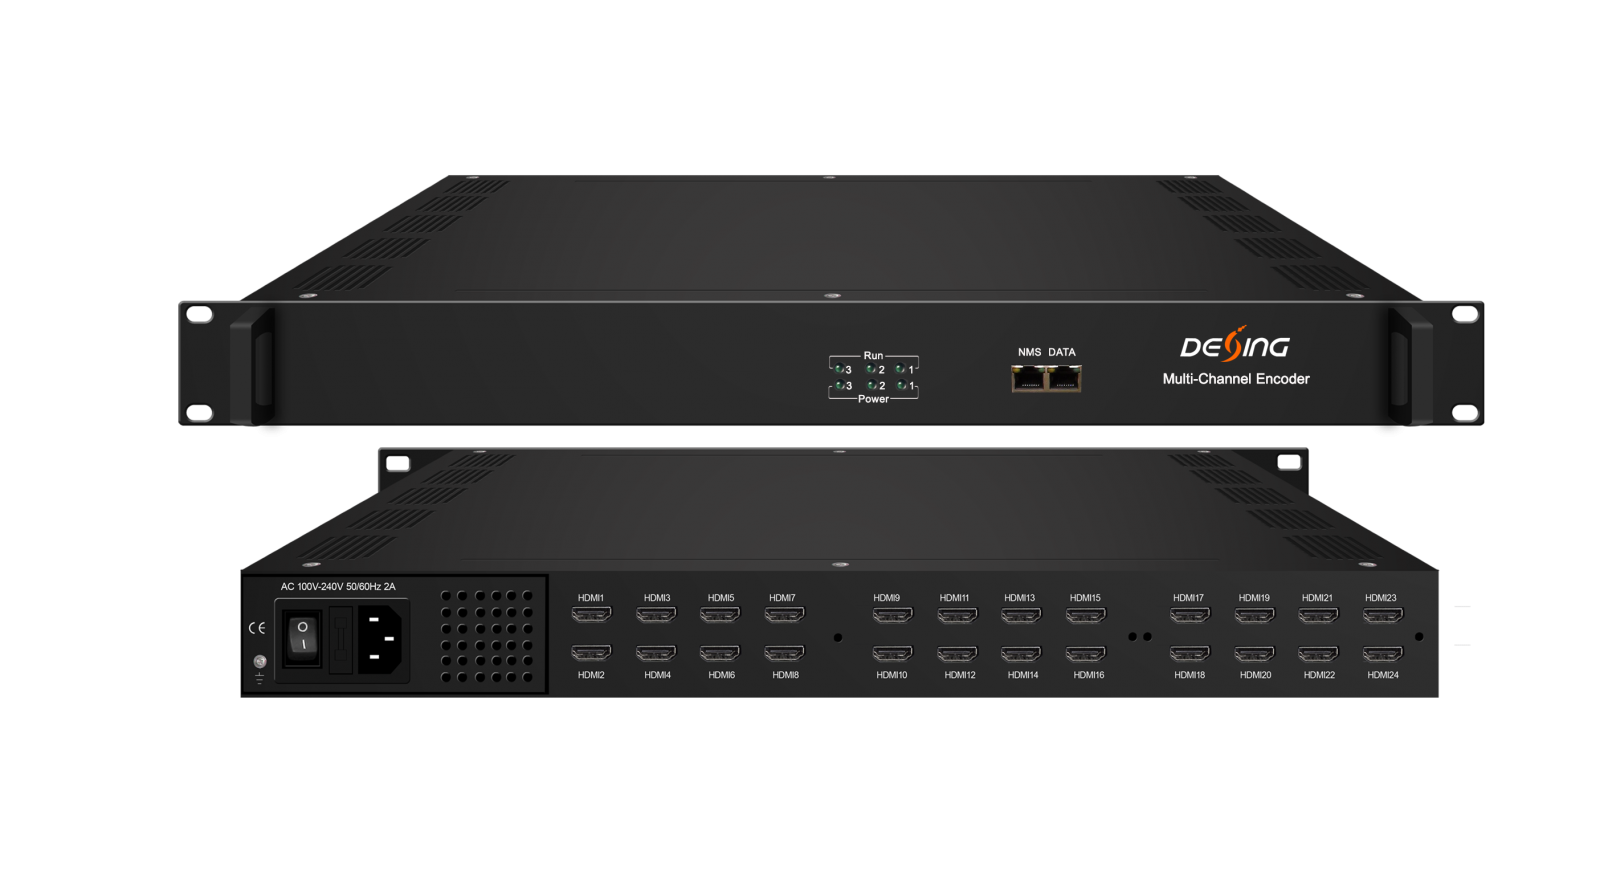 NDS3236S/NDS3244S Multi-channel Encoder